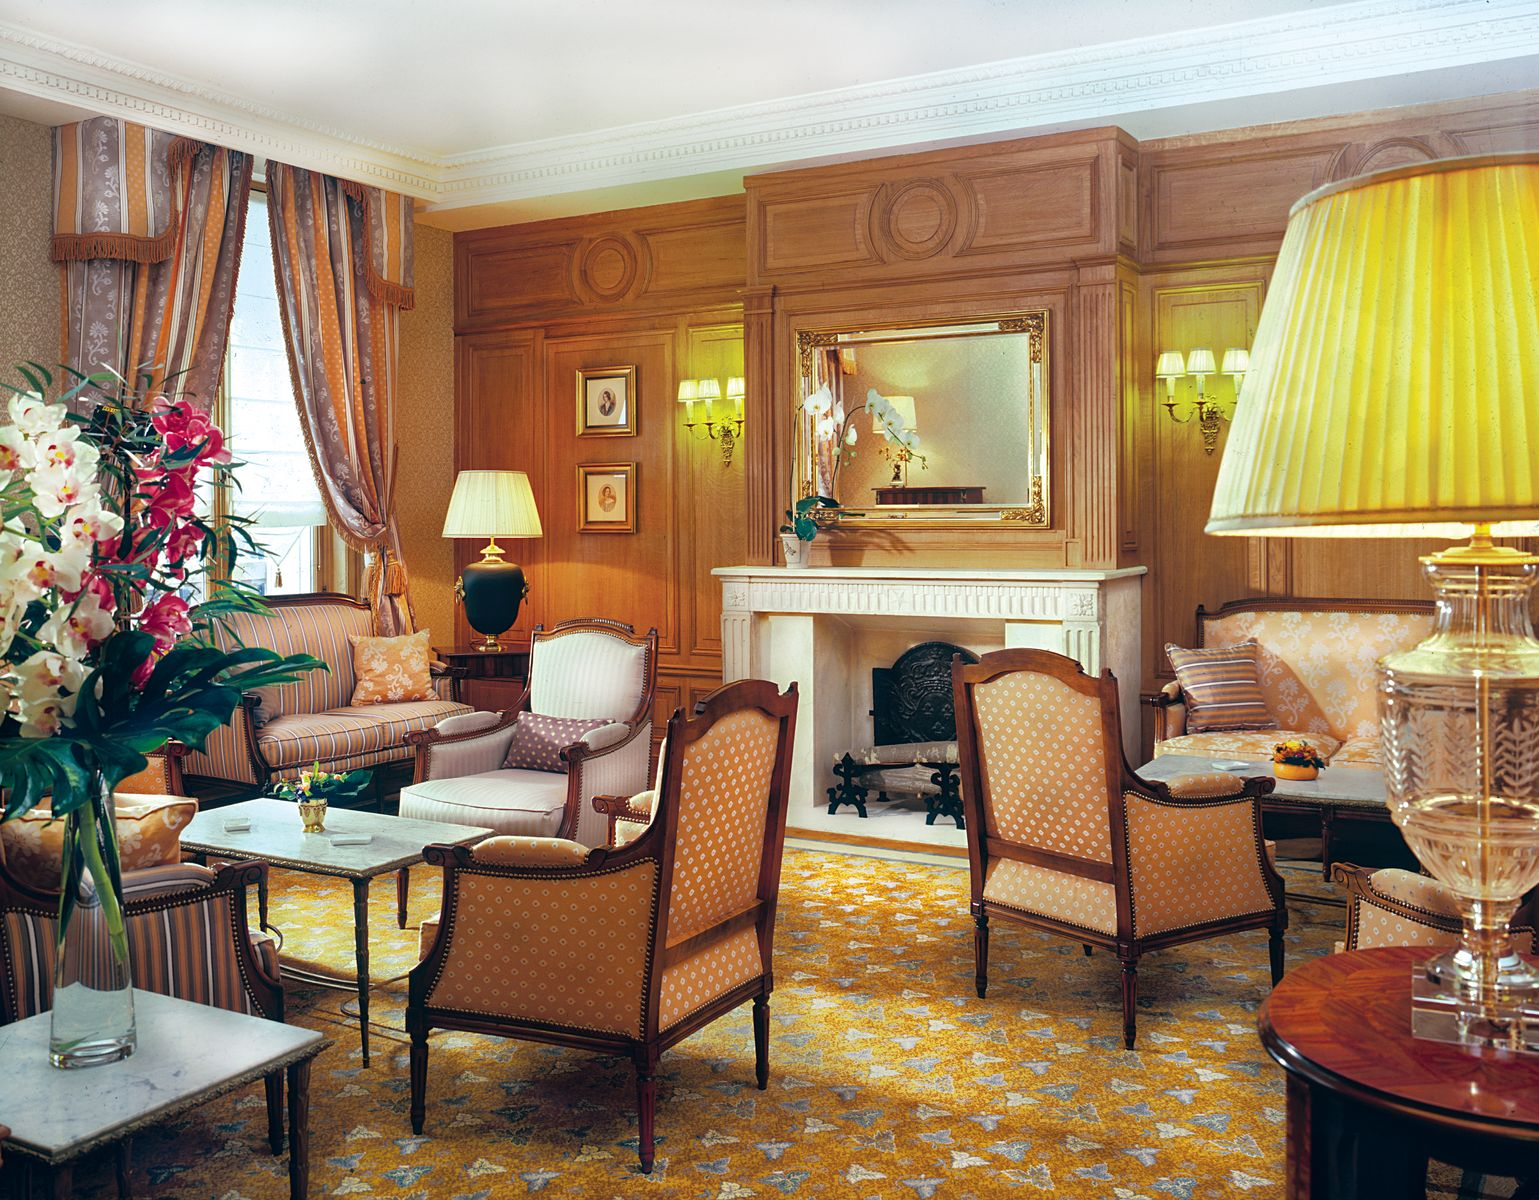 378/Galerie/3-Hotel Mayfair Paris Lounge_resultat.jpg